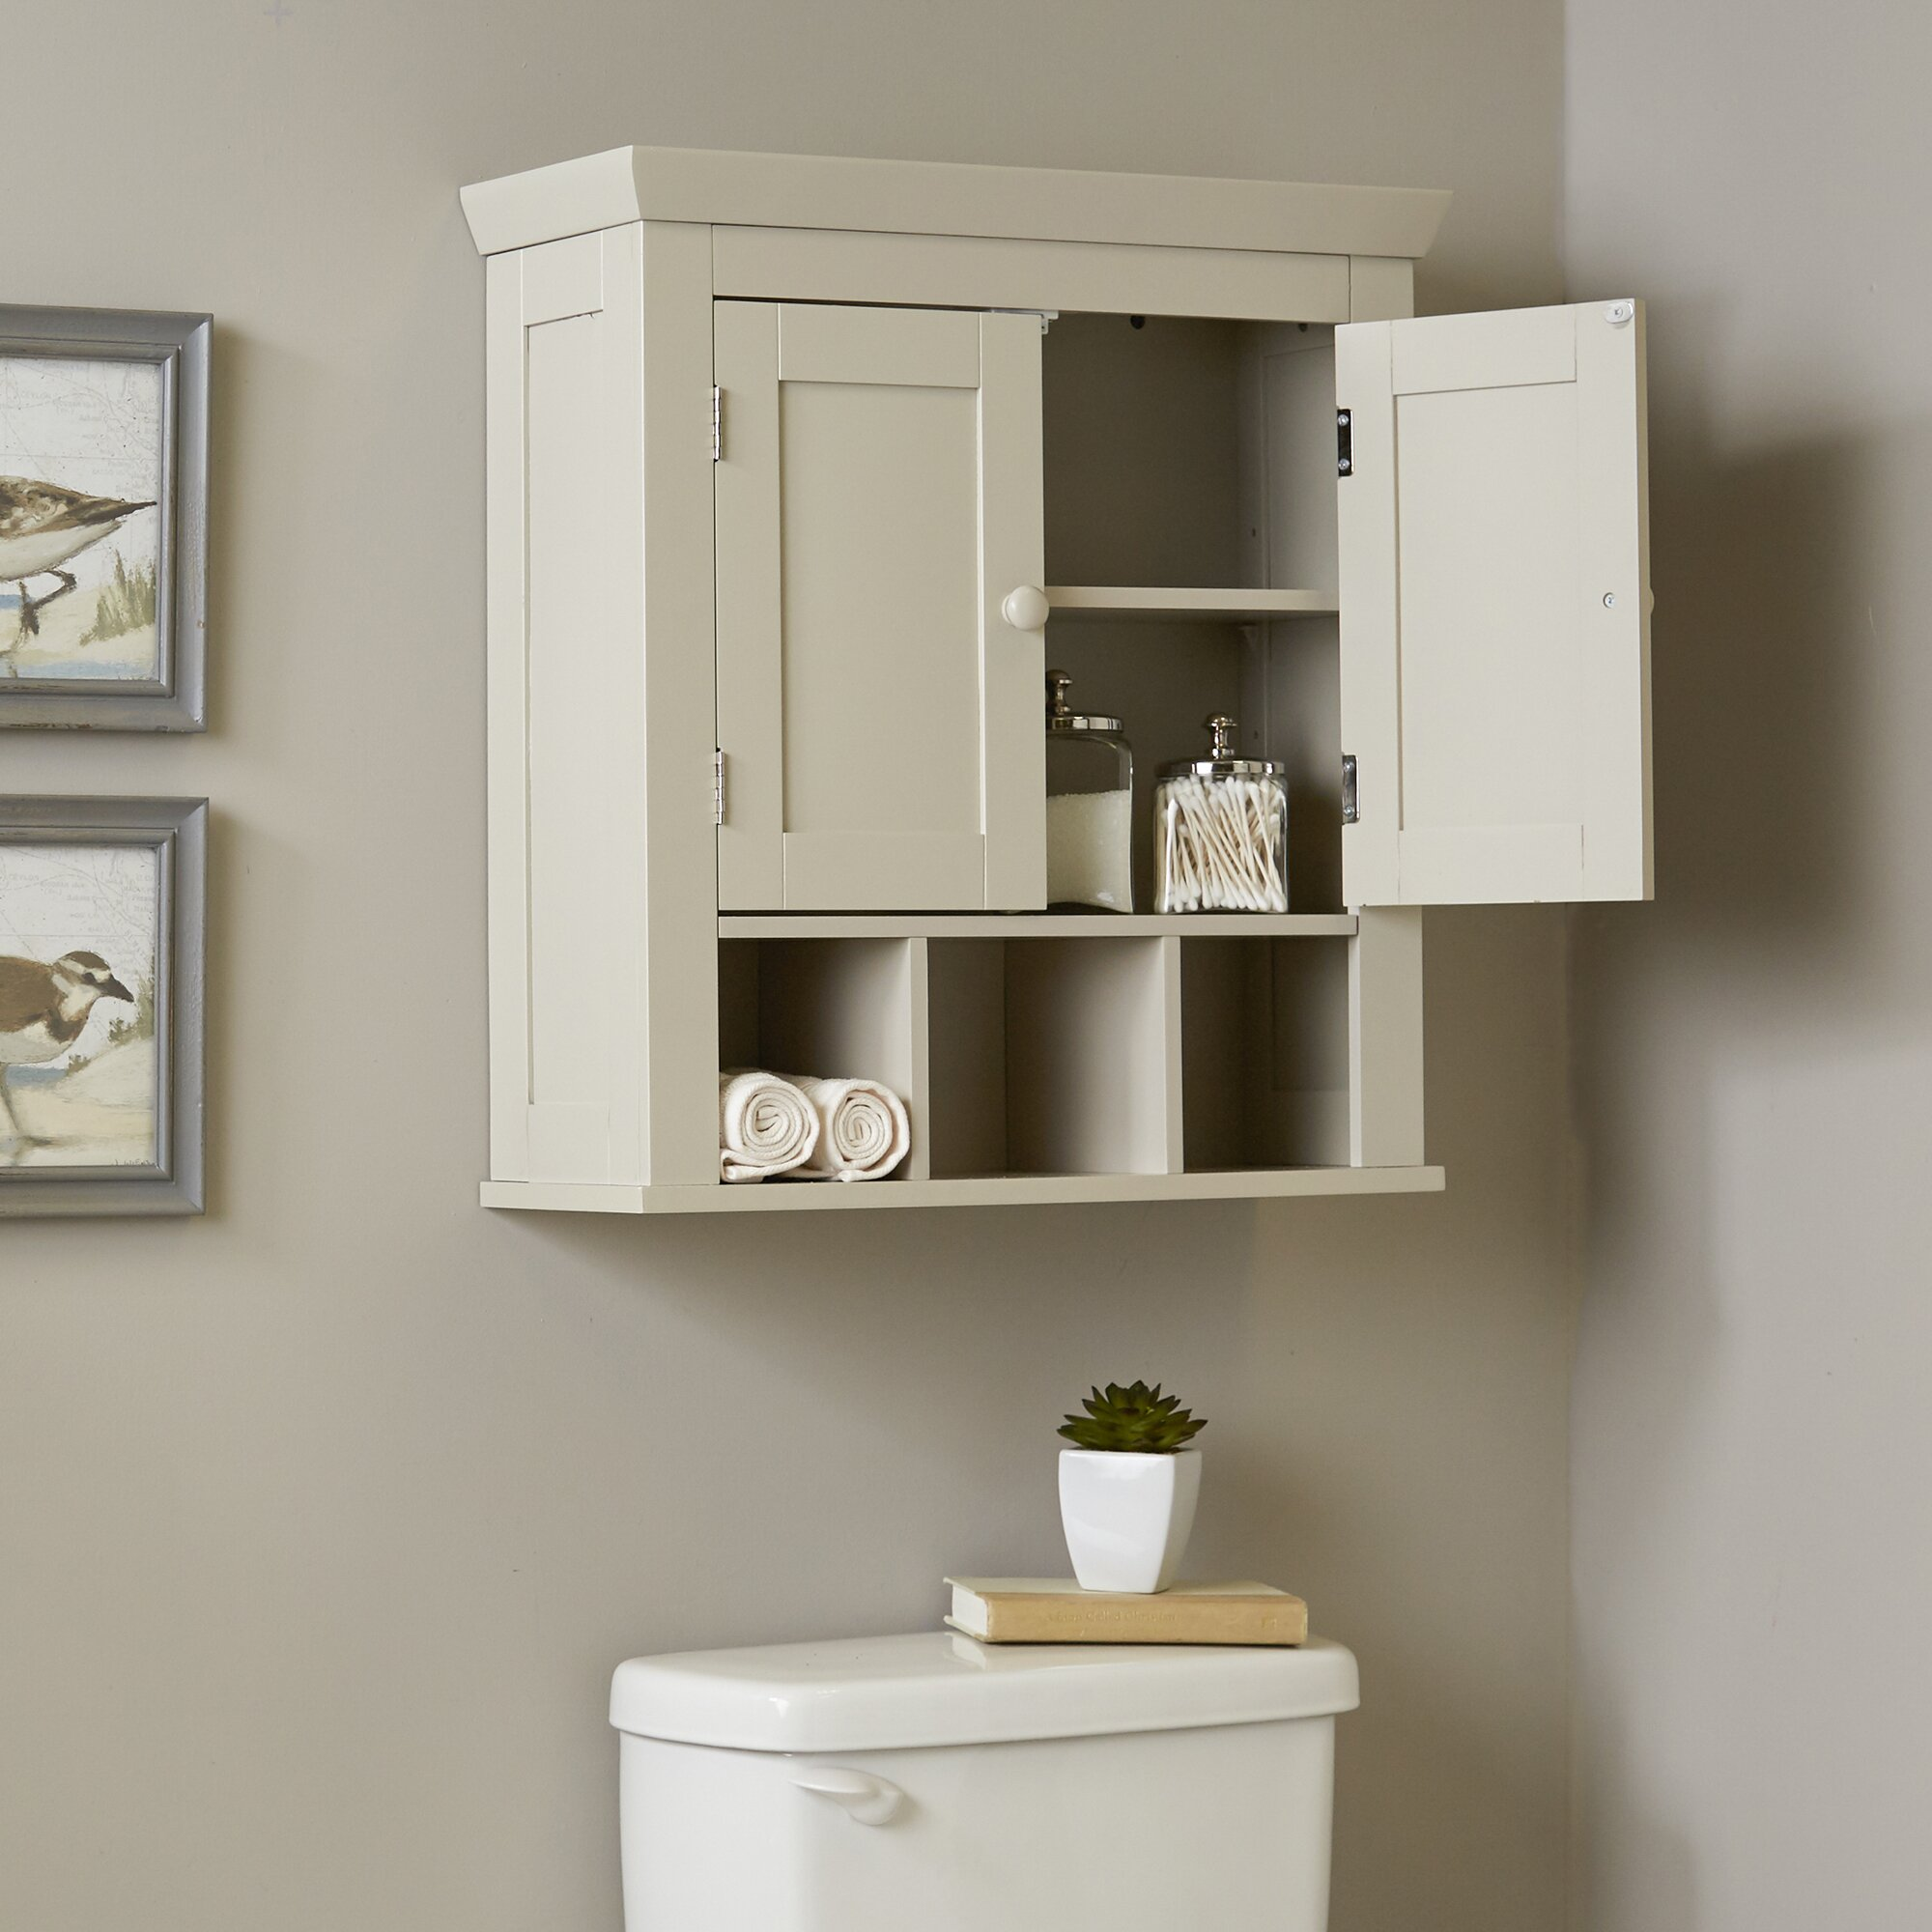 Bathroom storage wall cabinets - Birch Lane Trade Caraway Bathroom Wall Cabinet